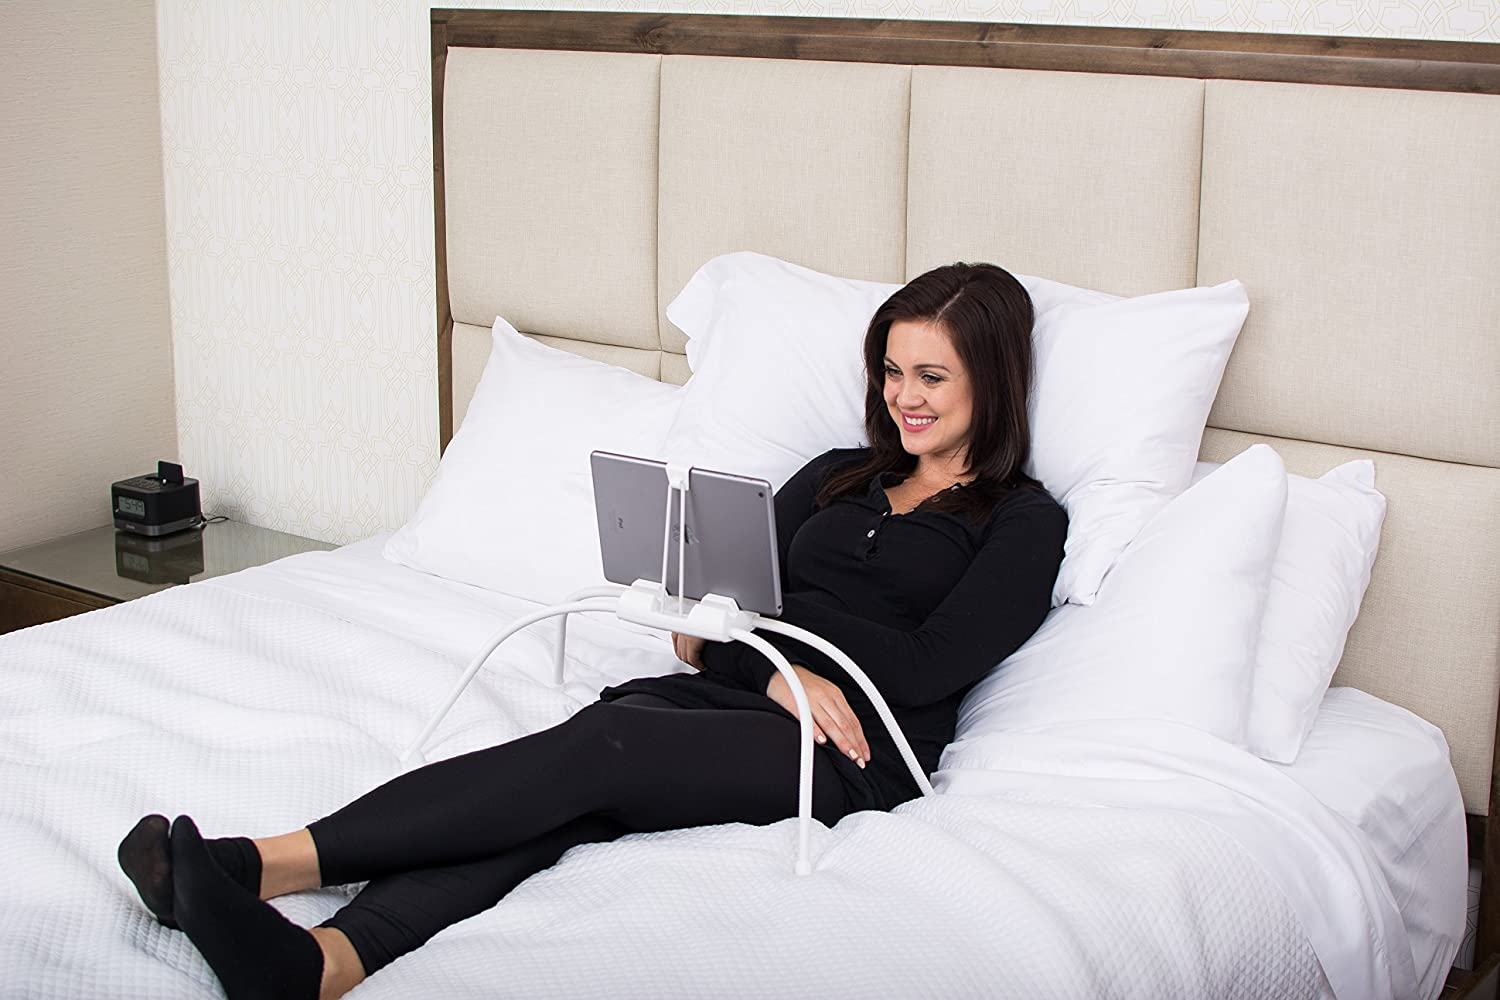 Tablift Tablet Stand (in White) for the Bed, Sofa, or Any Uneven Surface Nbryte 4328658209